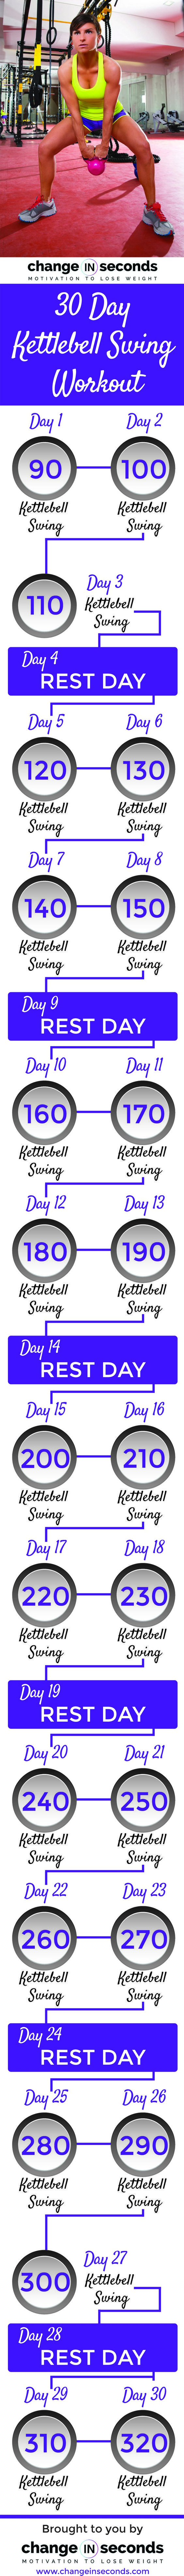 Kettlebell Workout http://www.changeinseconds.com/30-day-kettlebell-swing-workout/